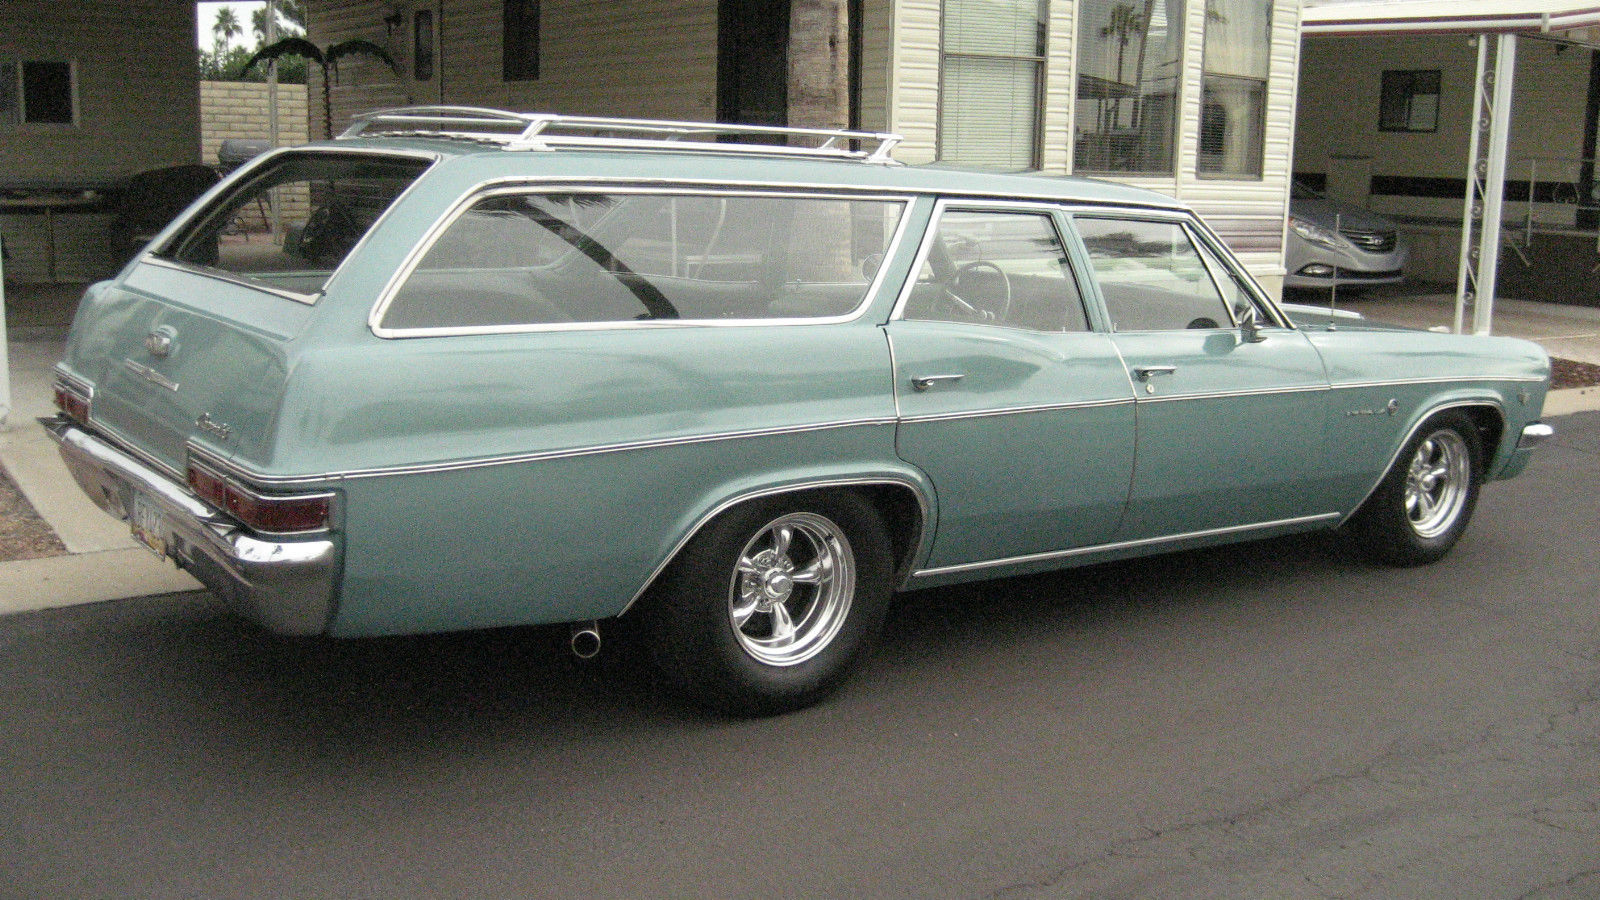 1966 chevrolet impala station wagon for sale in mesa arizona united states. Black Bedroom Furniture Sets. Home Design Ideas